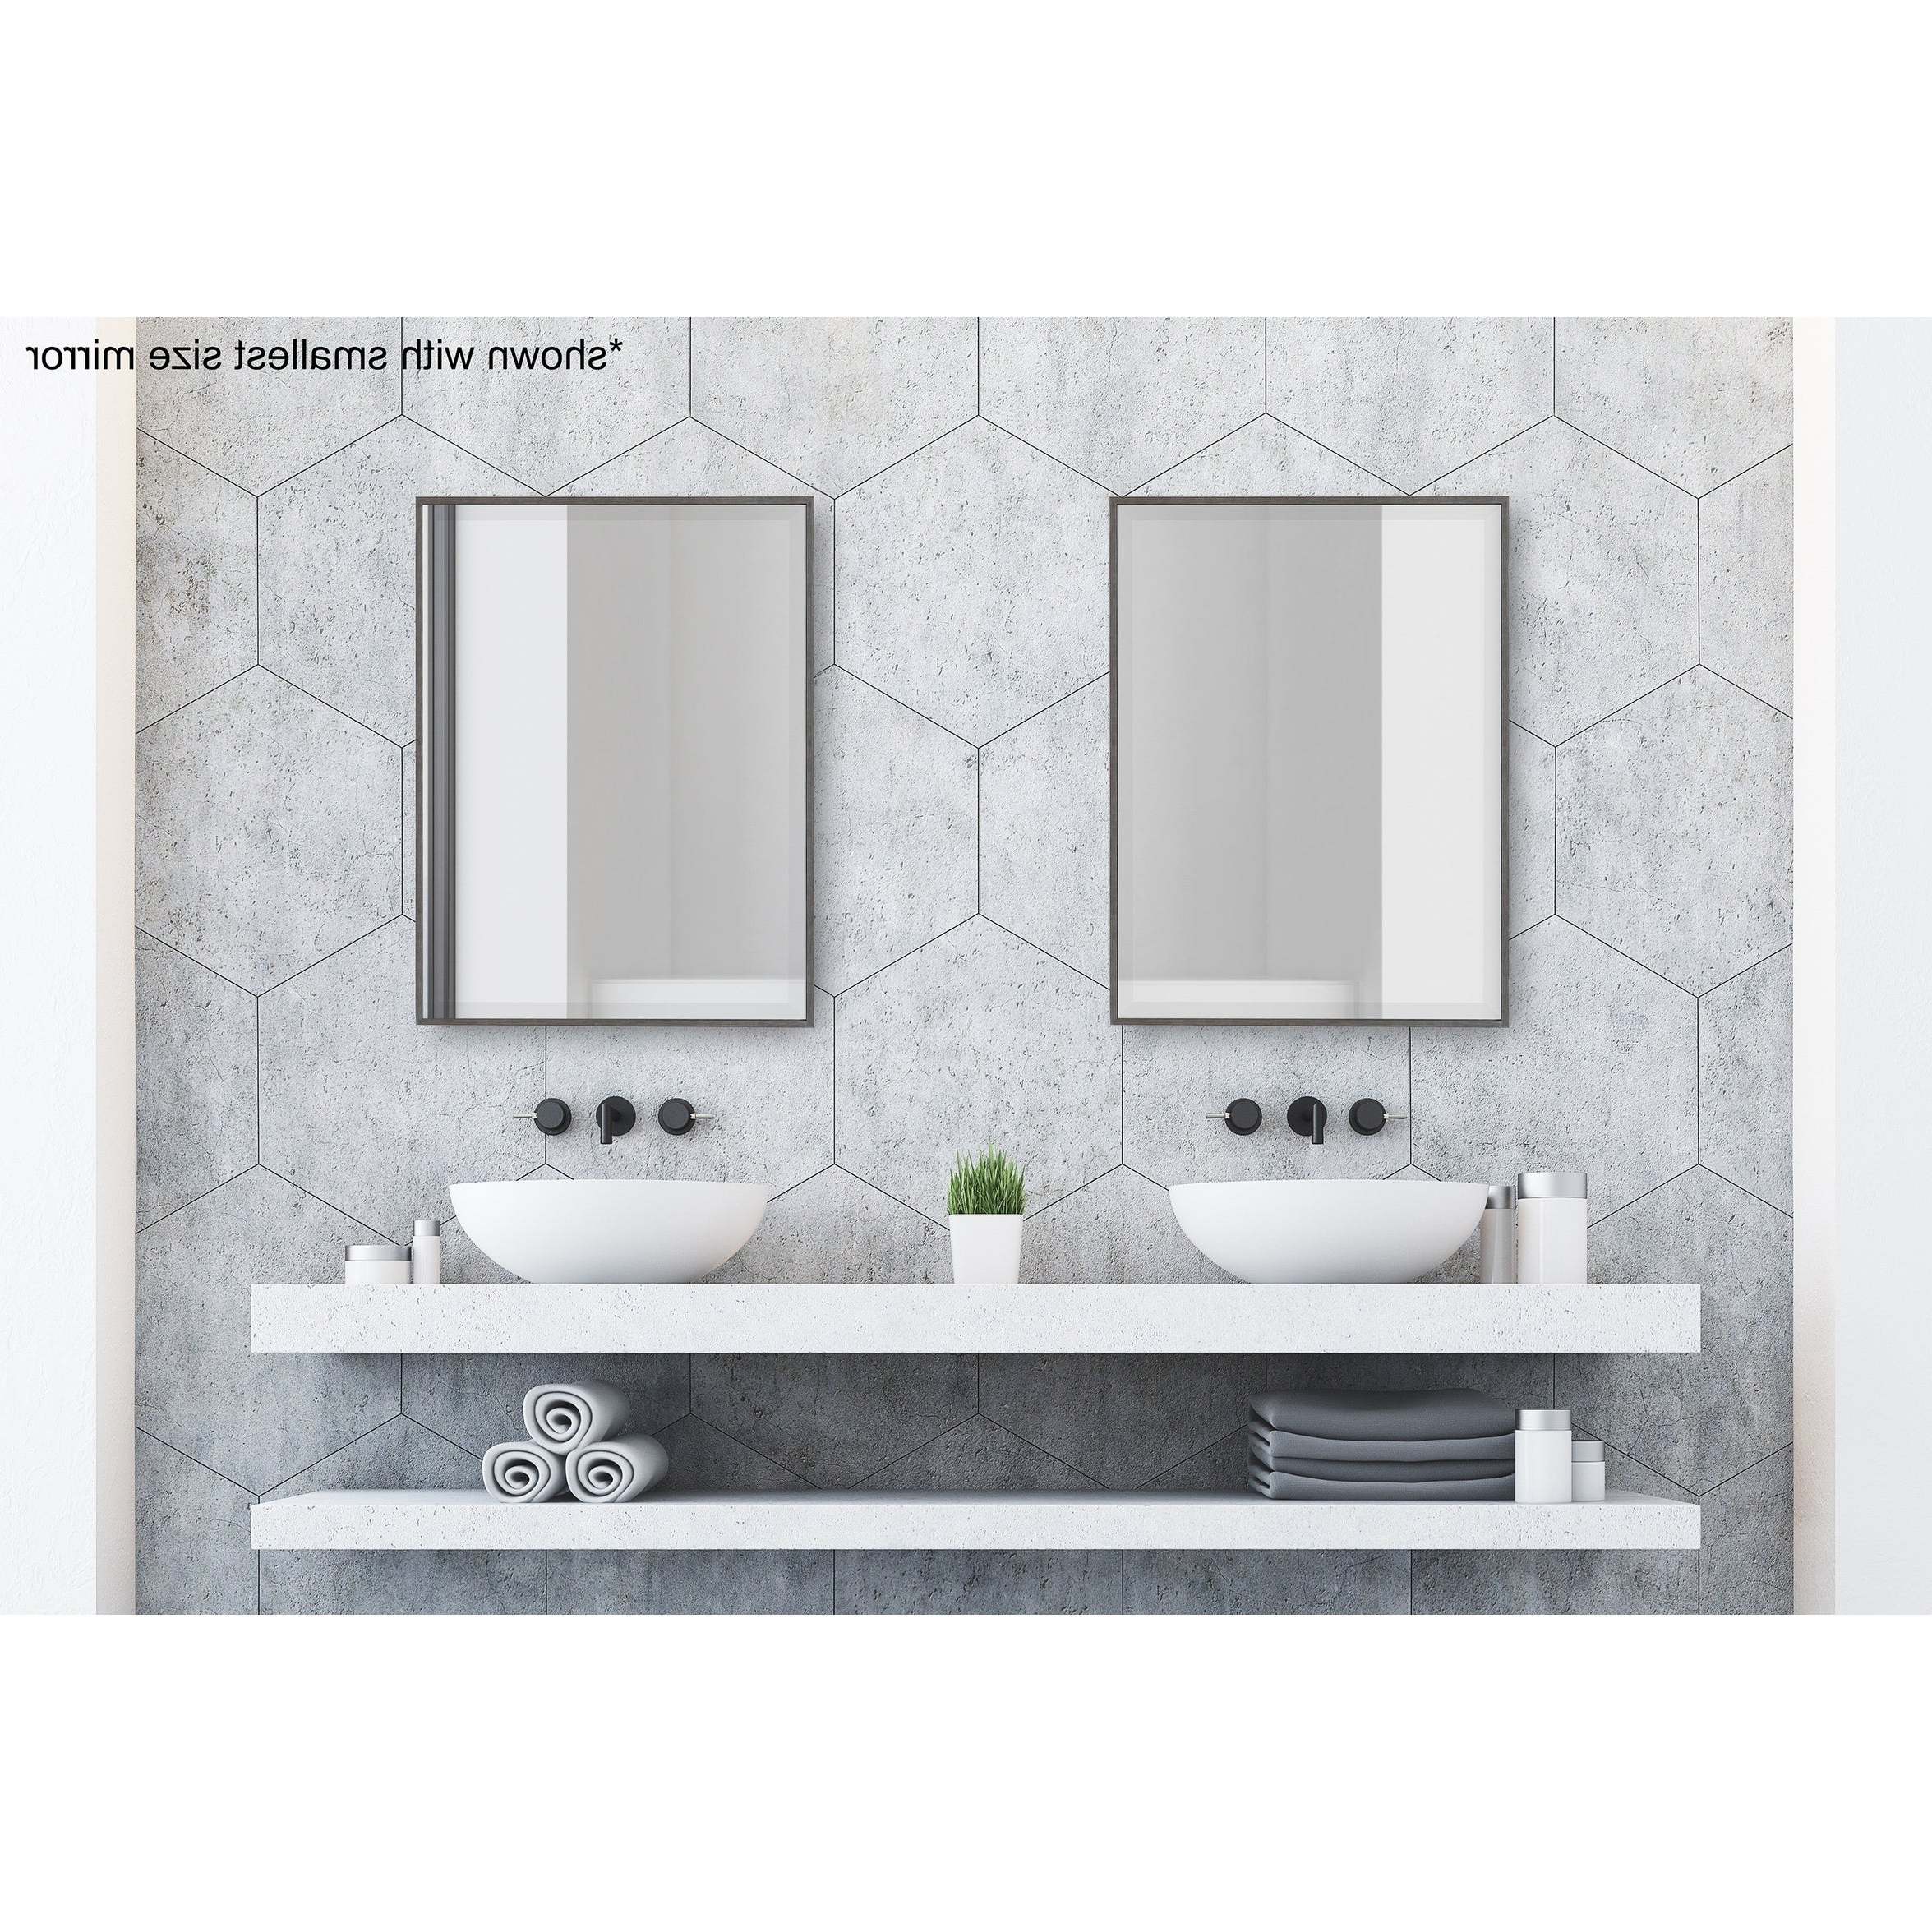 Shop Online At Overstock Within Small Decorative Wall Mirror Sets (View 13 of 20)